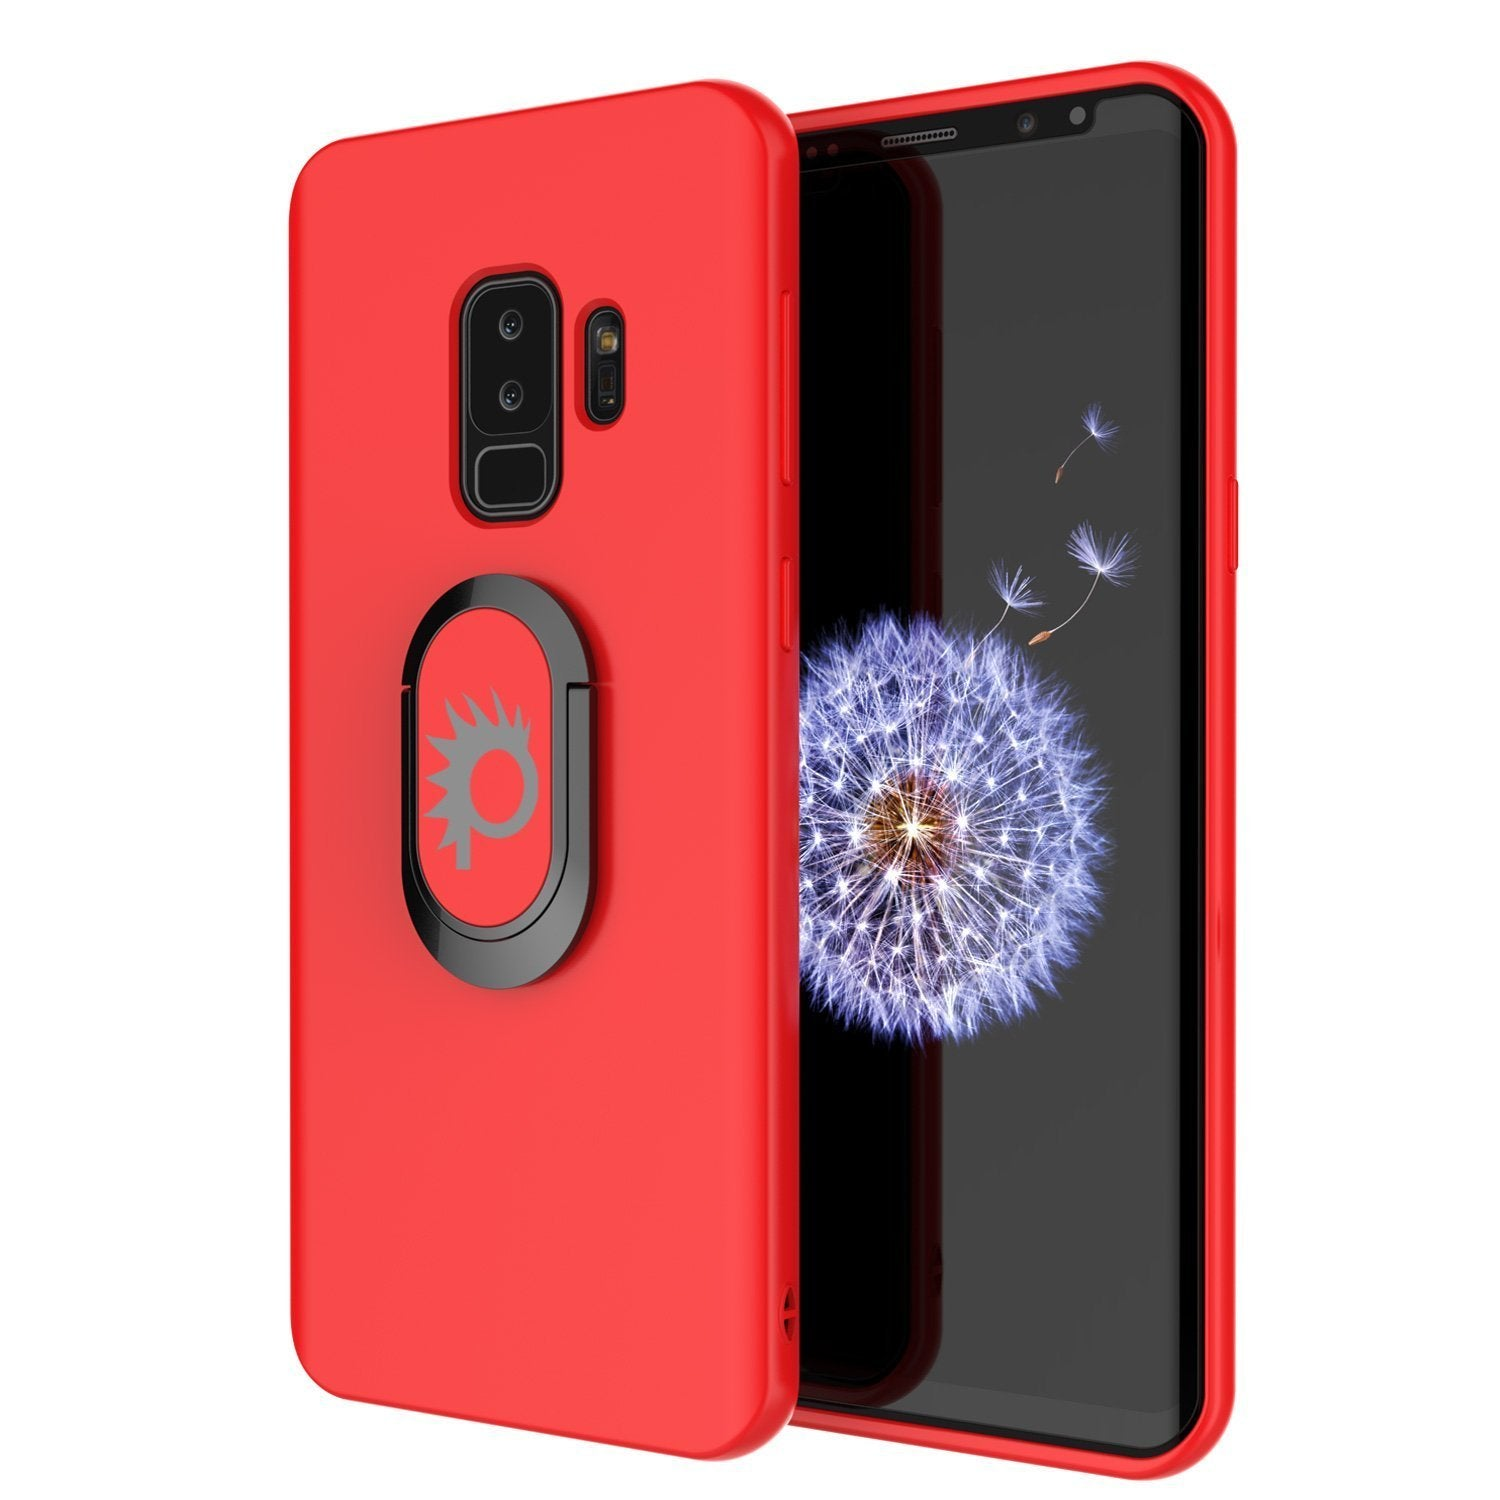 Galaxy S9 PLUS, Punkcase Magnetix Protective TPU Cover W/ Kickstand, Ring Grip Holder & Metal Plate for Magnetic Car Phone Mount PLUS PunkShield Screen Protector for Samsung S9+ Edge [Red]